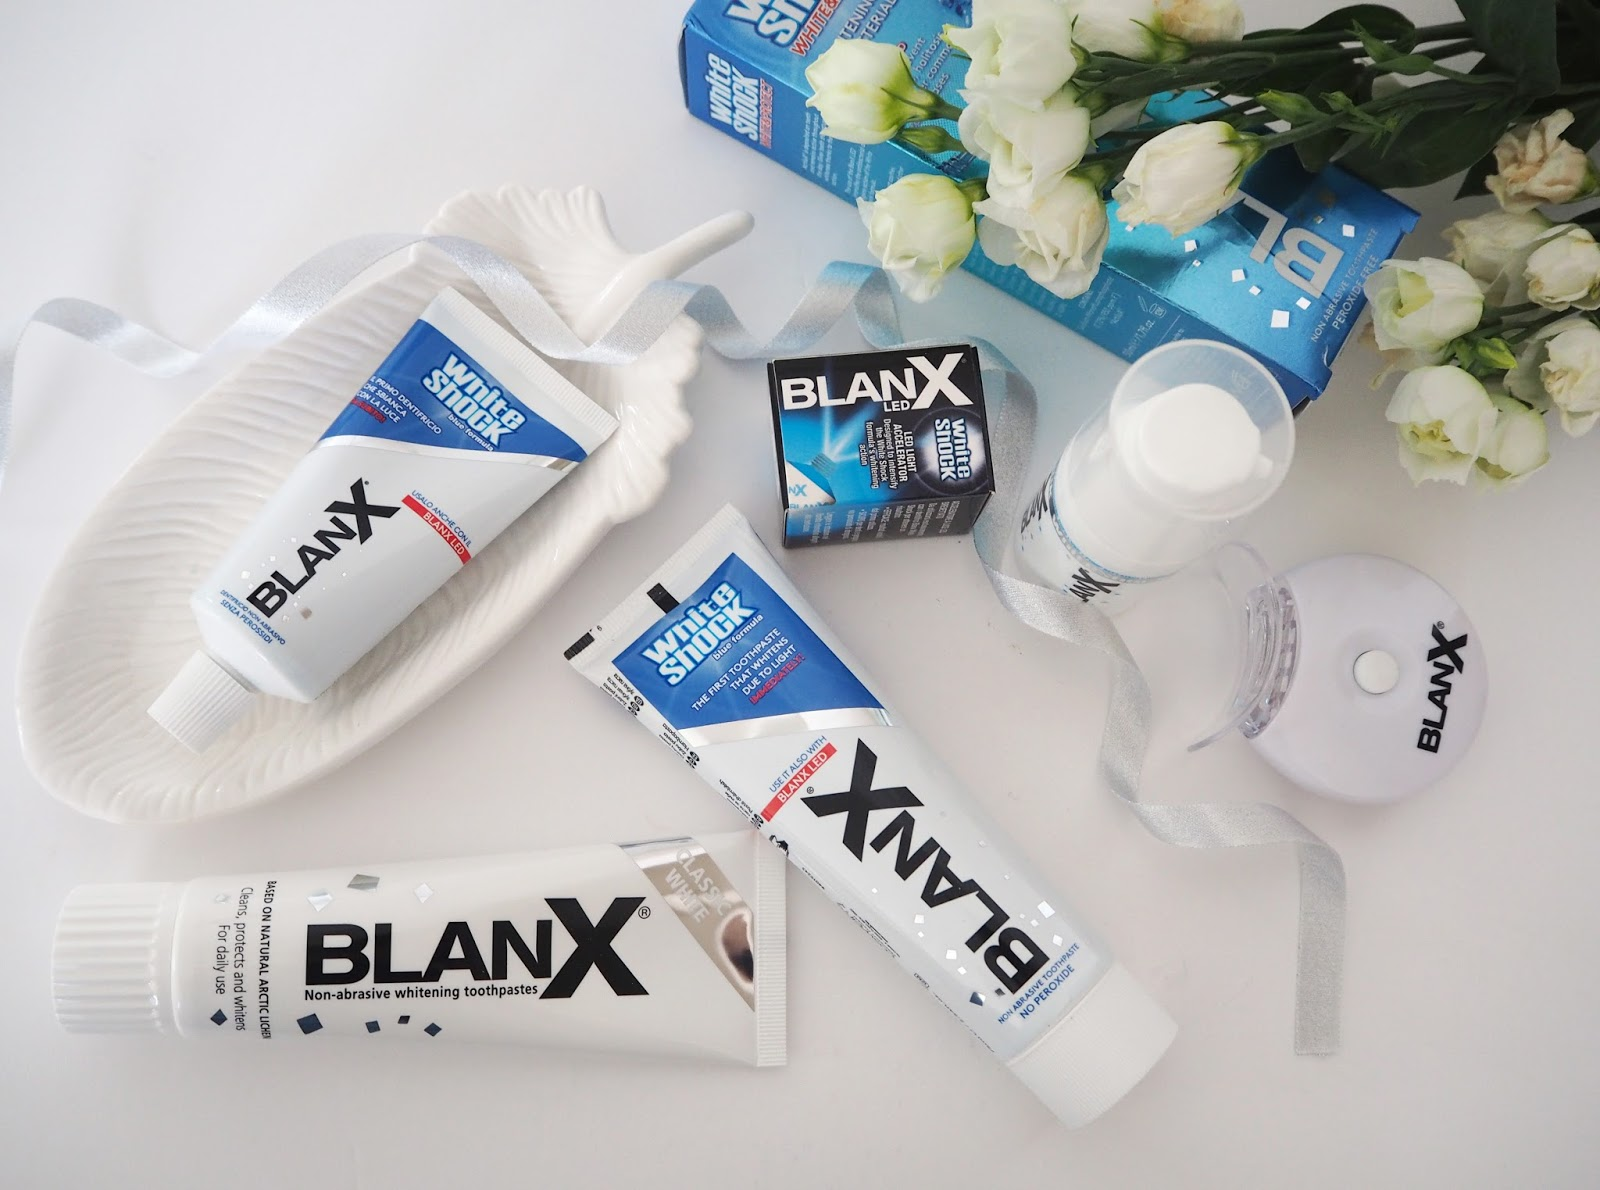 Lighten Up Your Smile with Blanx Teeth Whitening, Katie Kirk Love, Teeth Whitening, UK Blogger, Non Abrasive Teeth Whitening, Peroxide Free, Blanx Toothpaste, Beauty Blogger